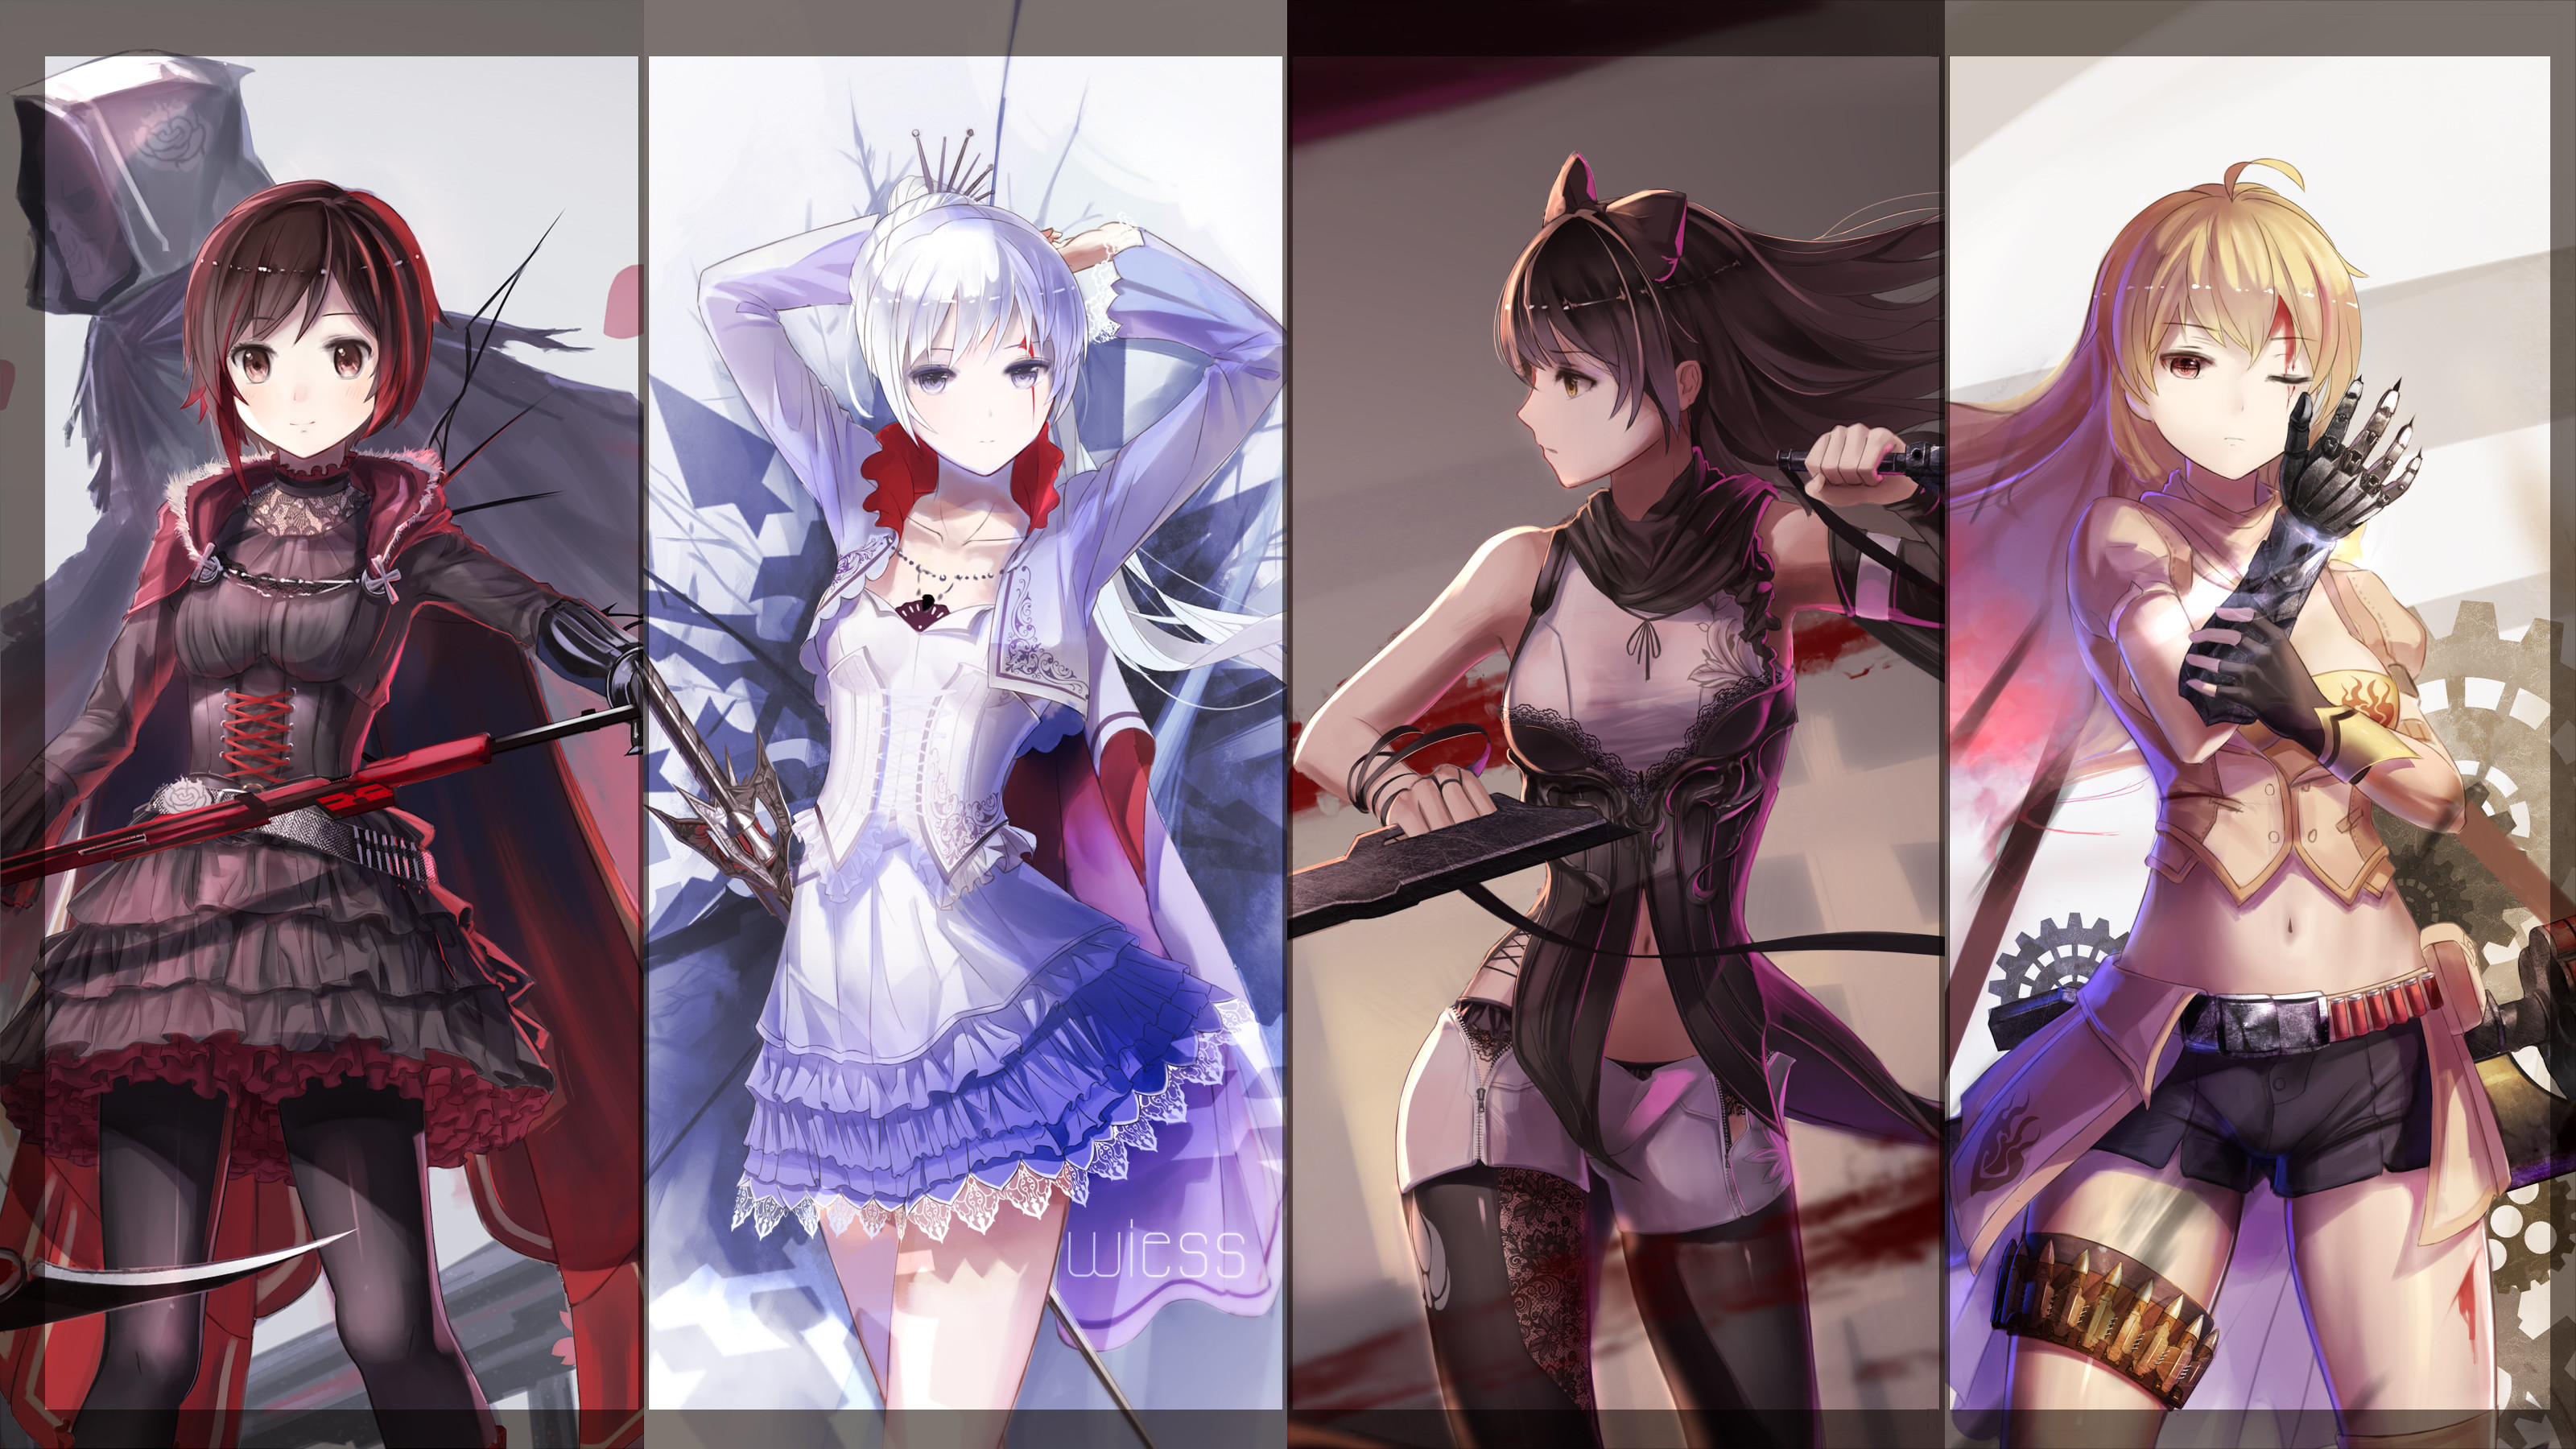 Cool RWBY wallpaper I found today.